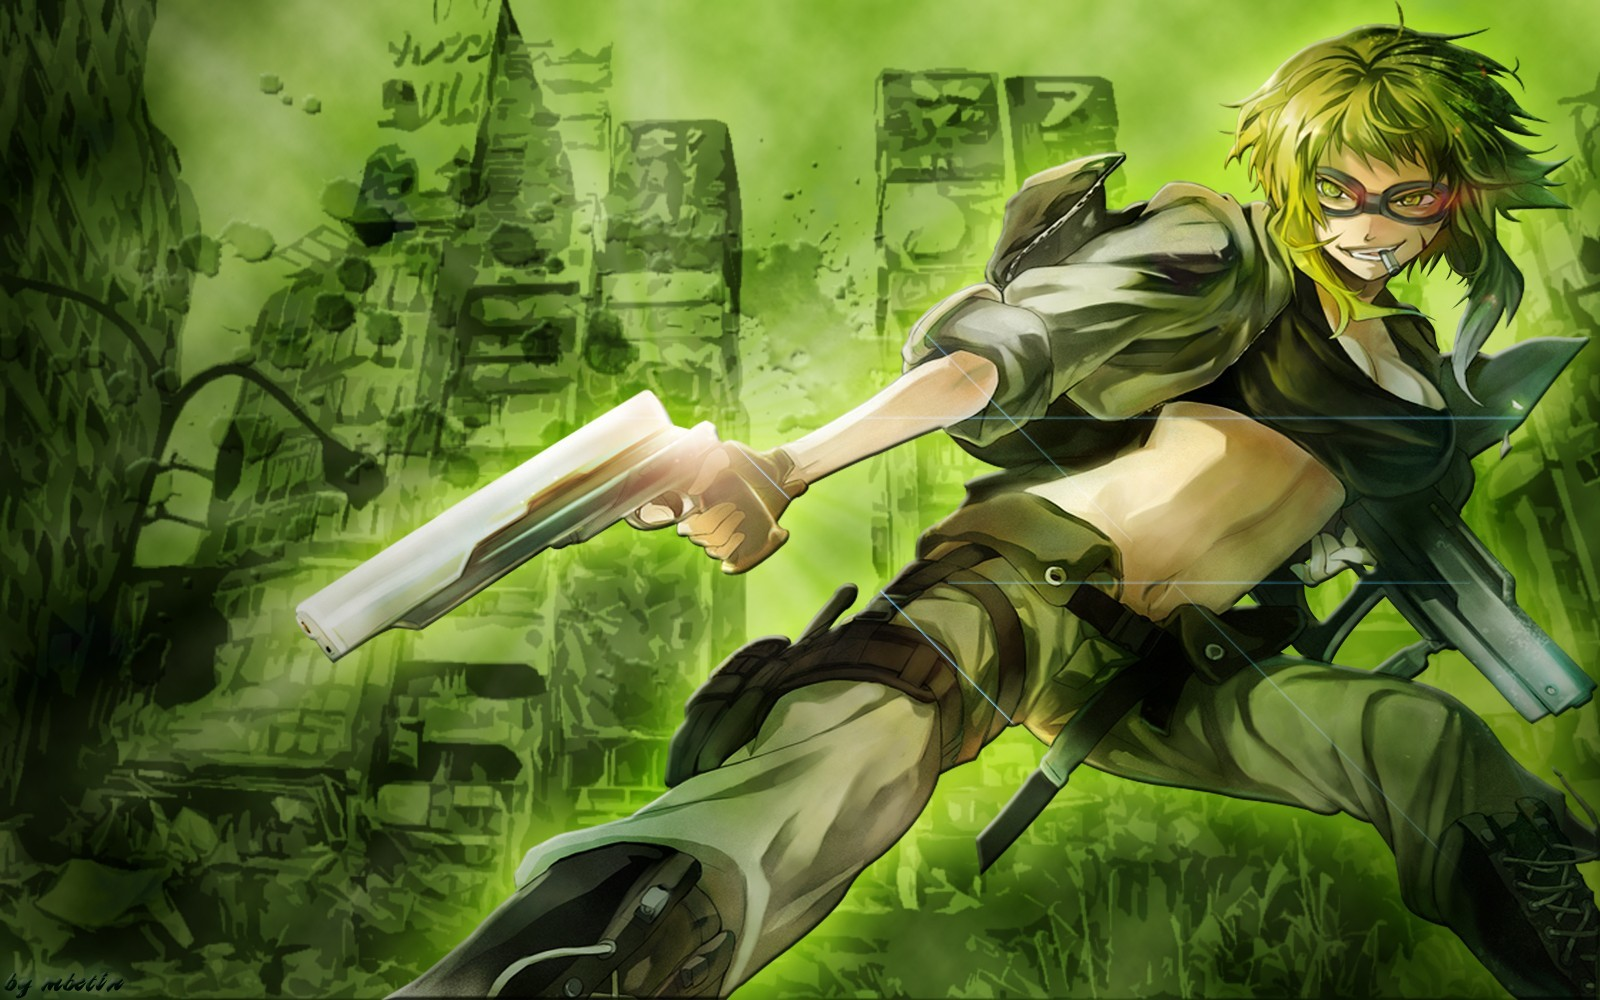 boots Green pants Guns HD Wallpaper